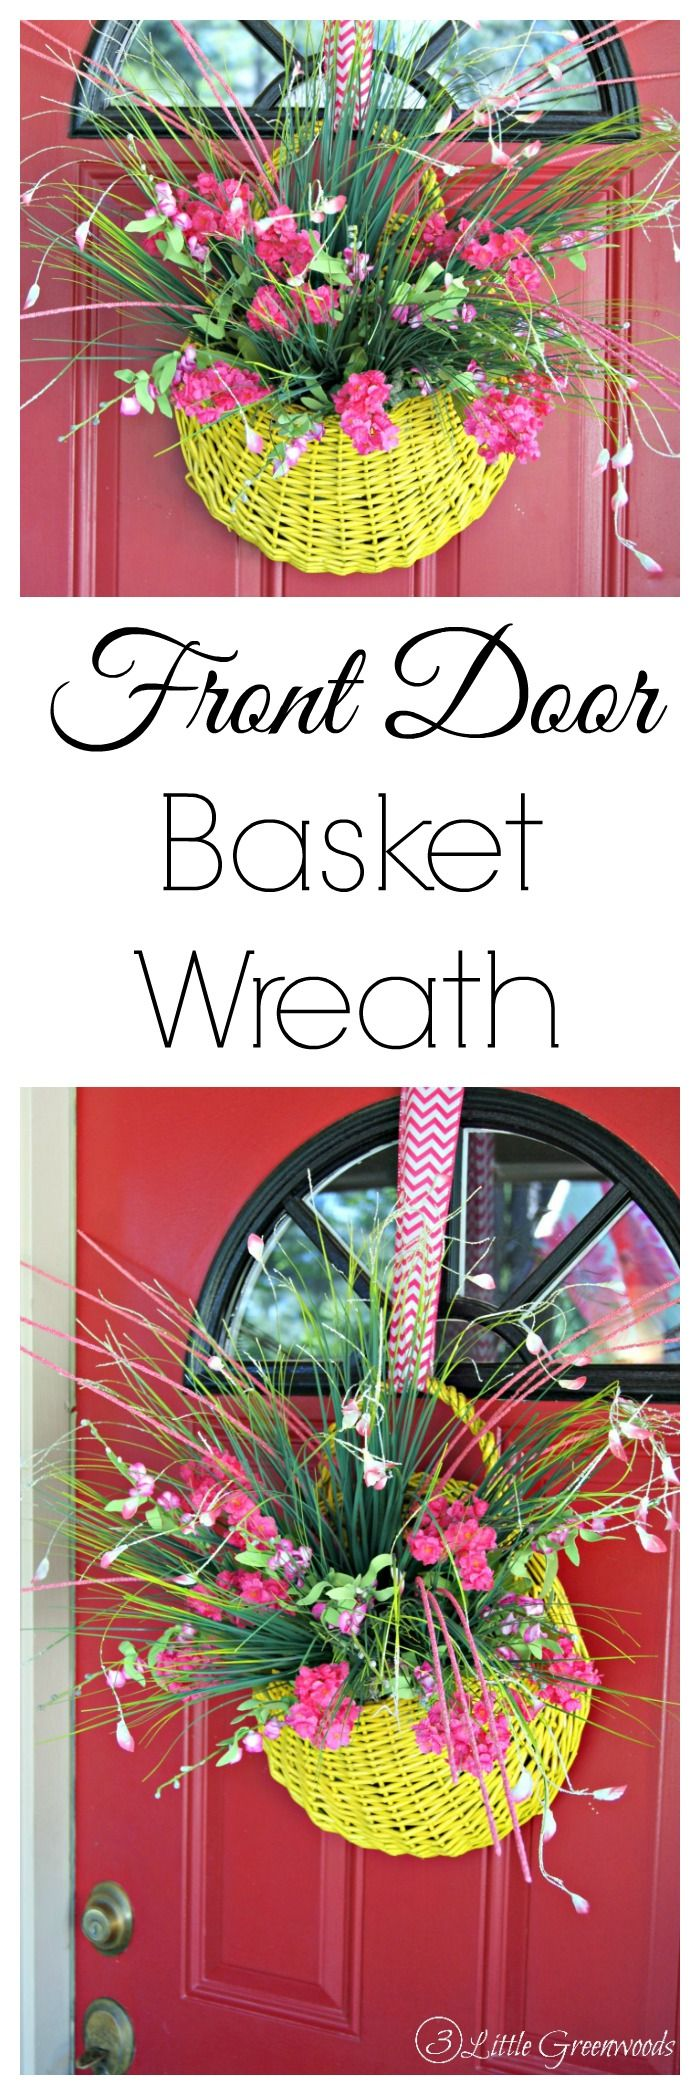 Fabulous Thrift Store Find turned into a Spring Basket Wreath! Love the color an...